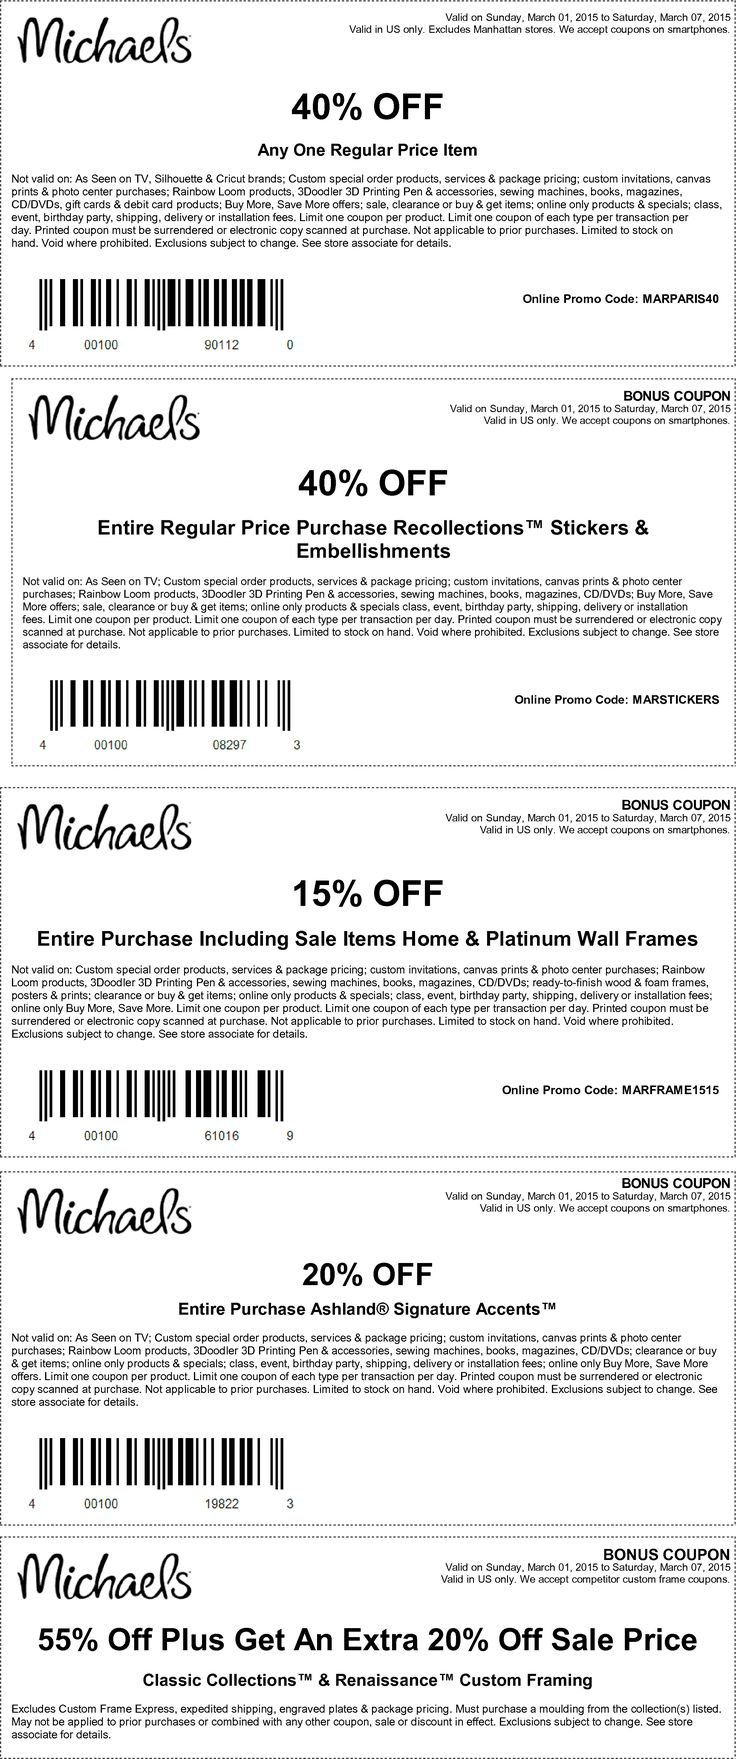 7 best coupons images on Pinterest | Coding, March and Mars